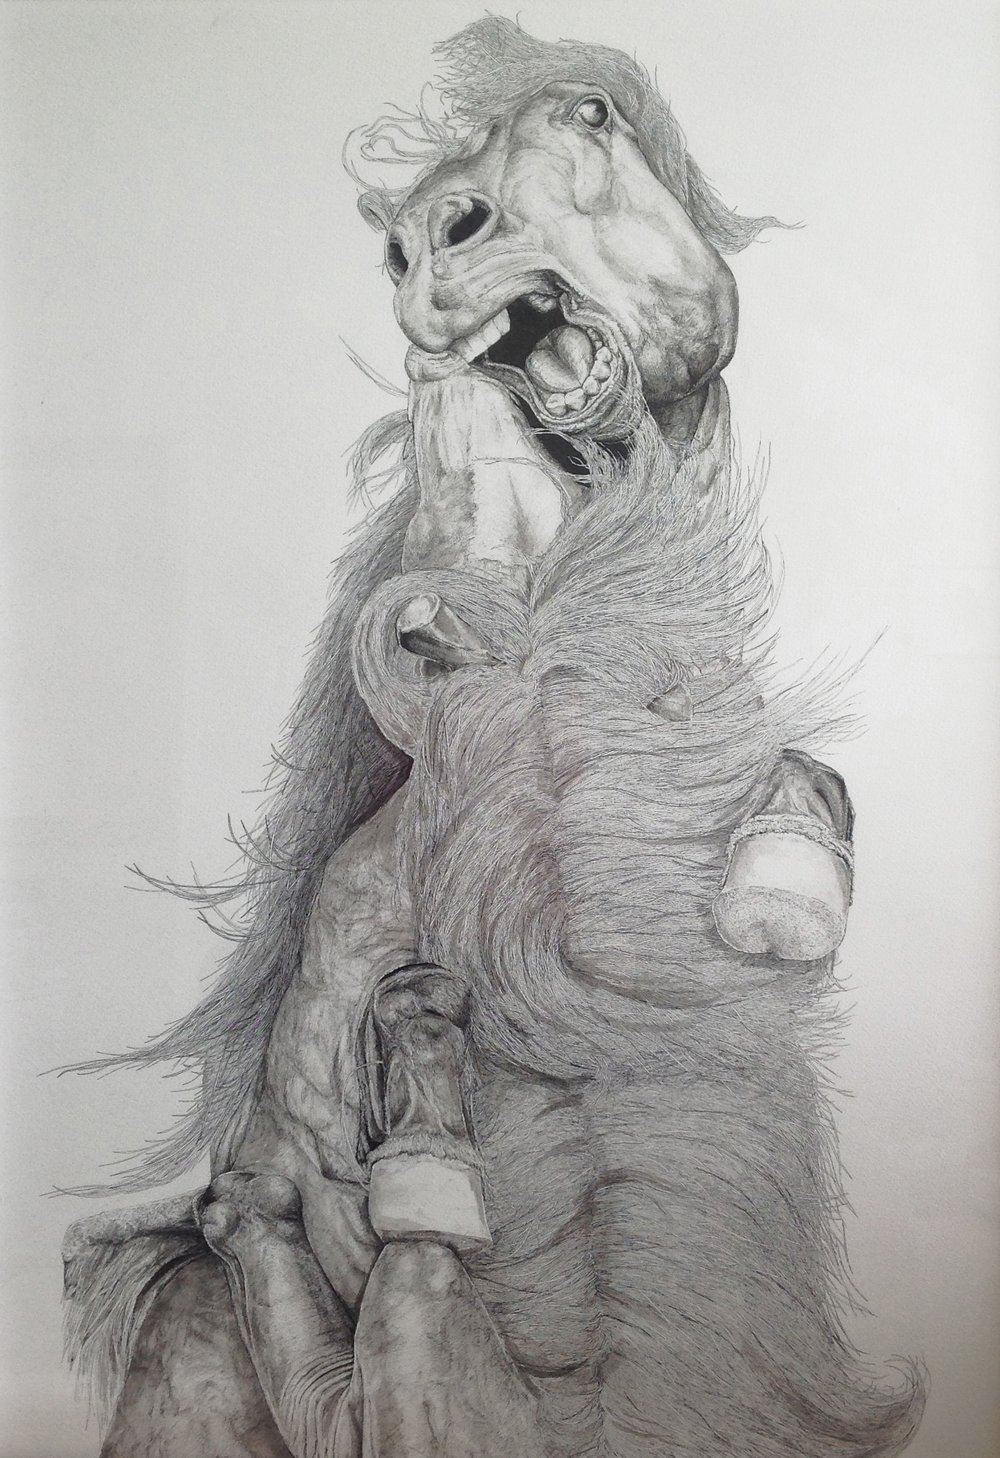 'FIGHT'  2013 PEN AND INK WASH ON CARDRIDGE PAPER - 500x700mm